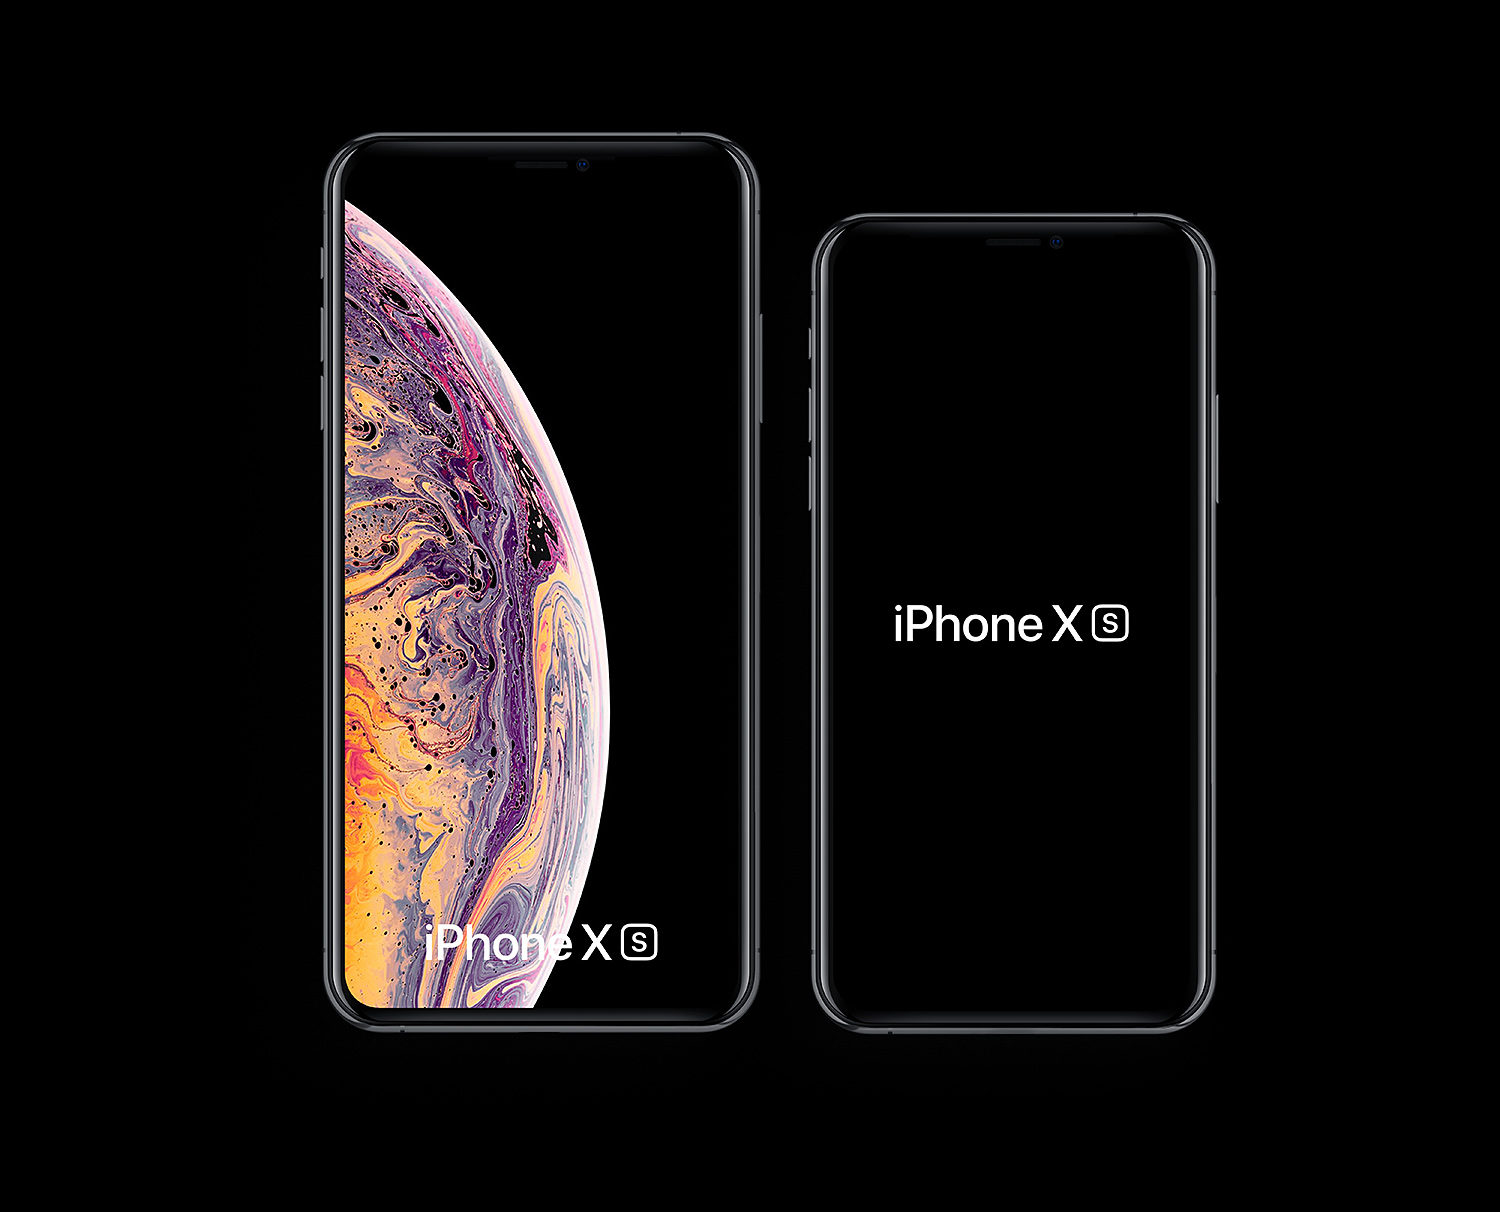 🔥 iPhone Xs & iPhone Xs Max Free PSD & Sketch Mockups (5 styles